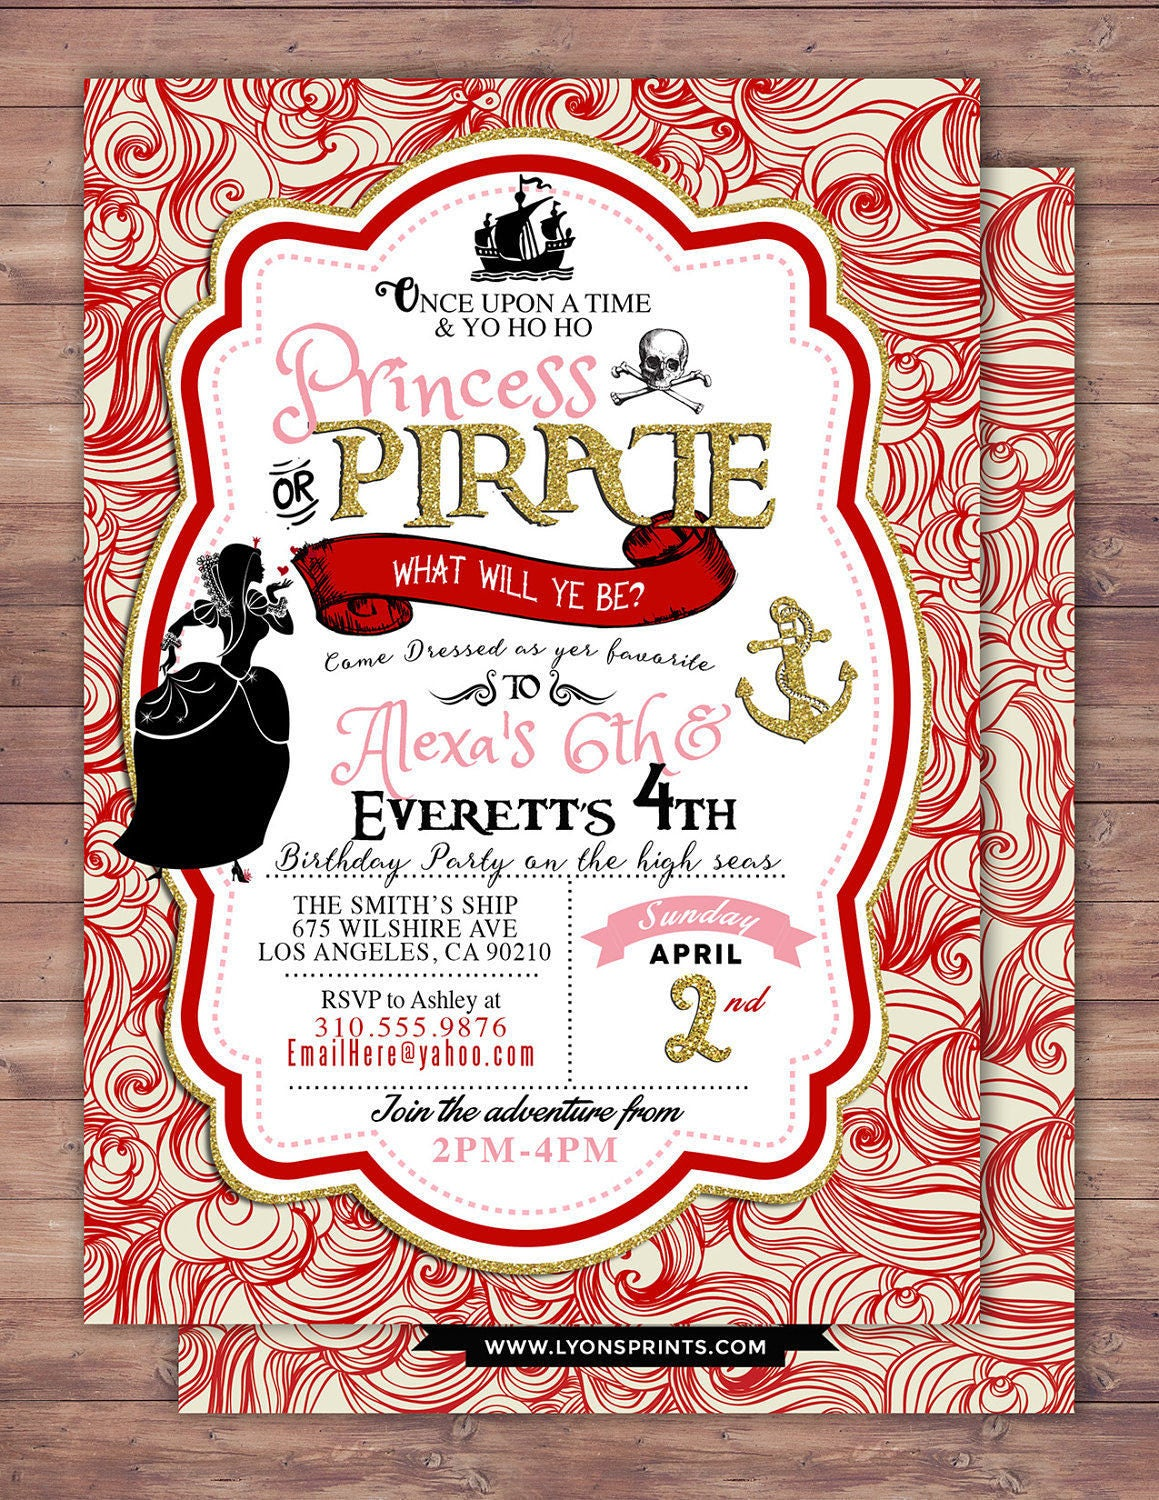 Pirate and Princess Party Invitations Personalised Pirate and – Pirates and Princess Party Invitations